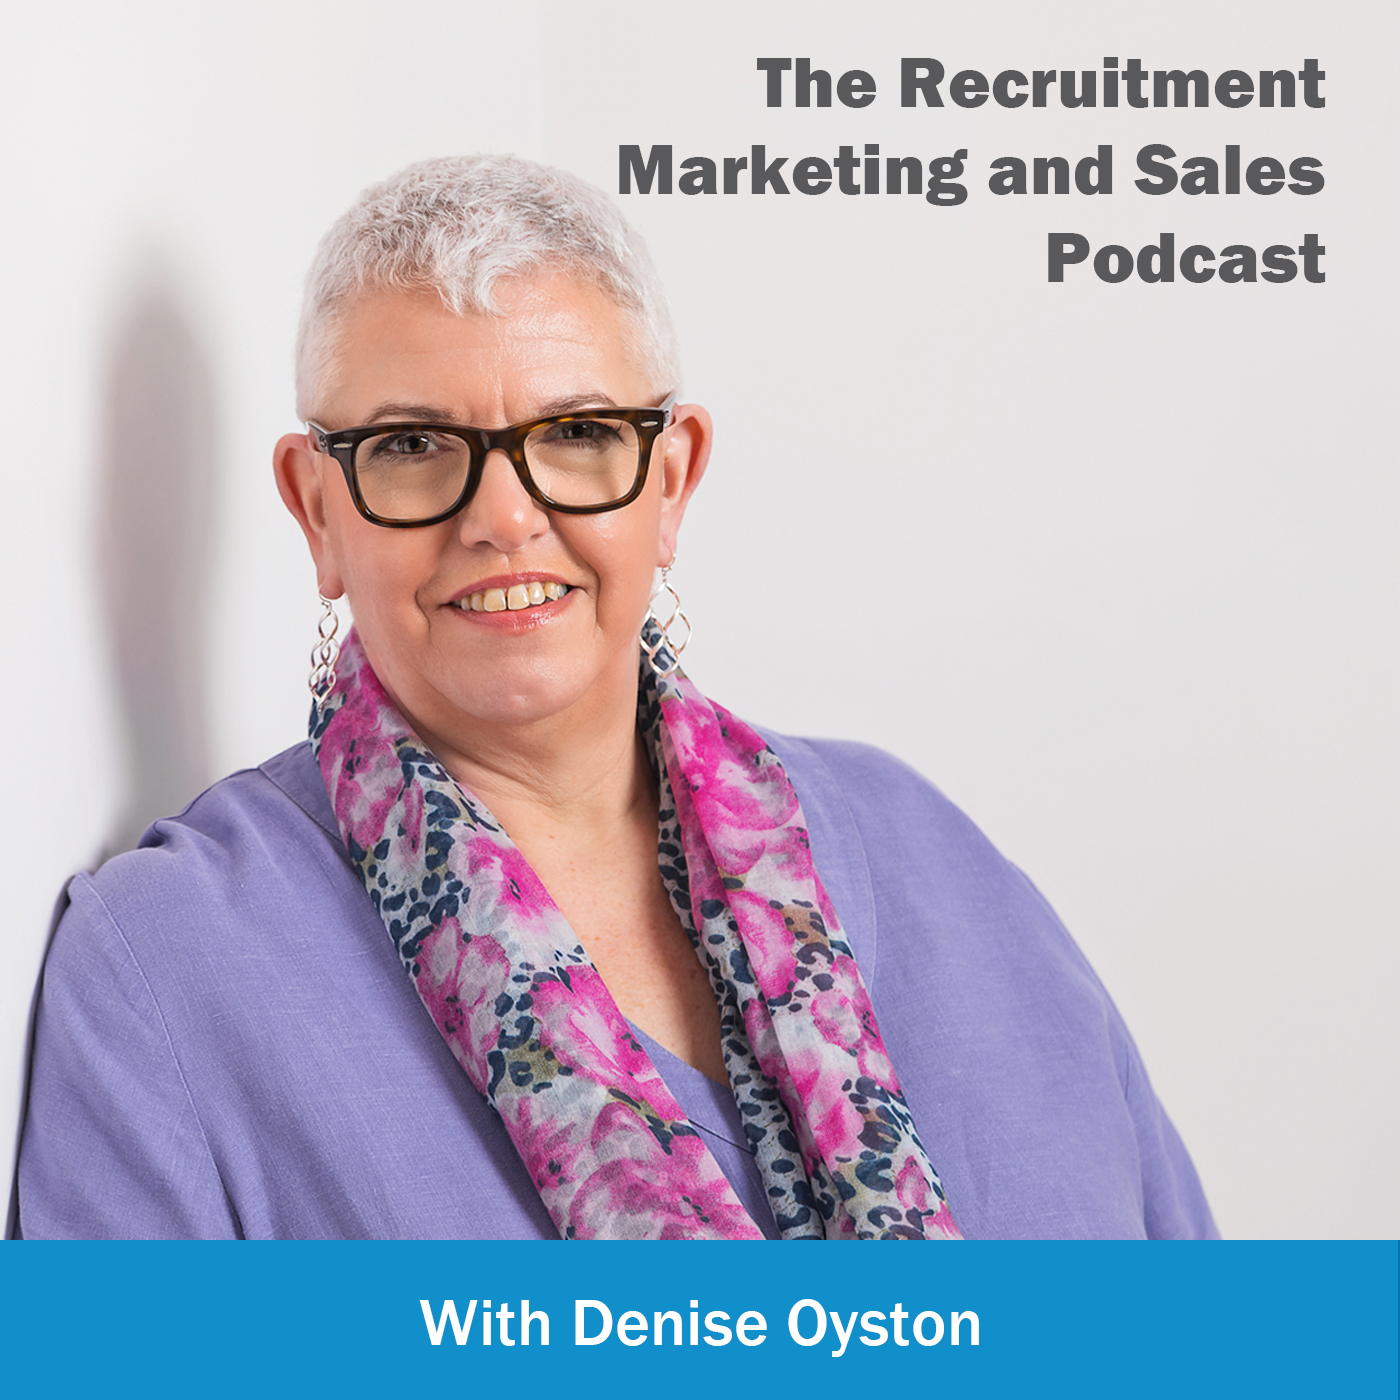 The Recruitment Marketing and Sales Podcast